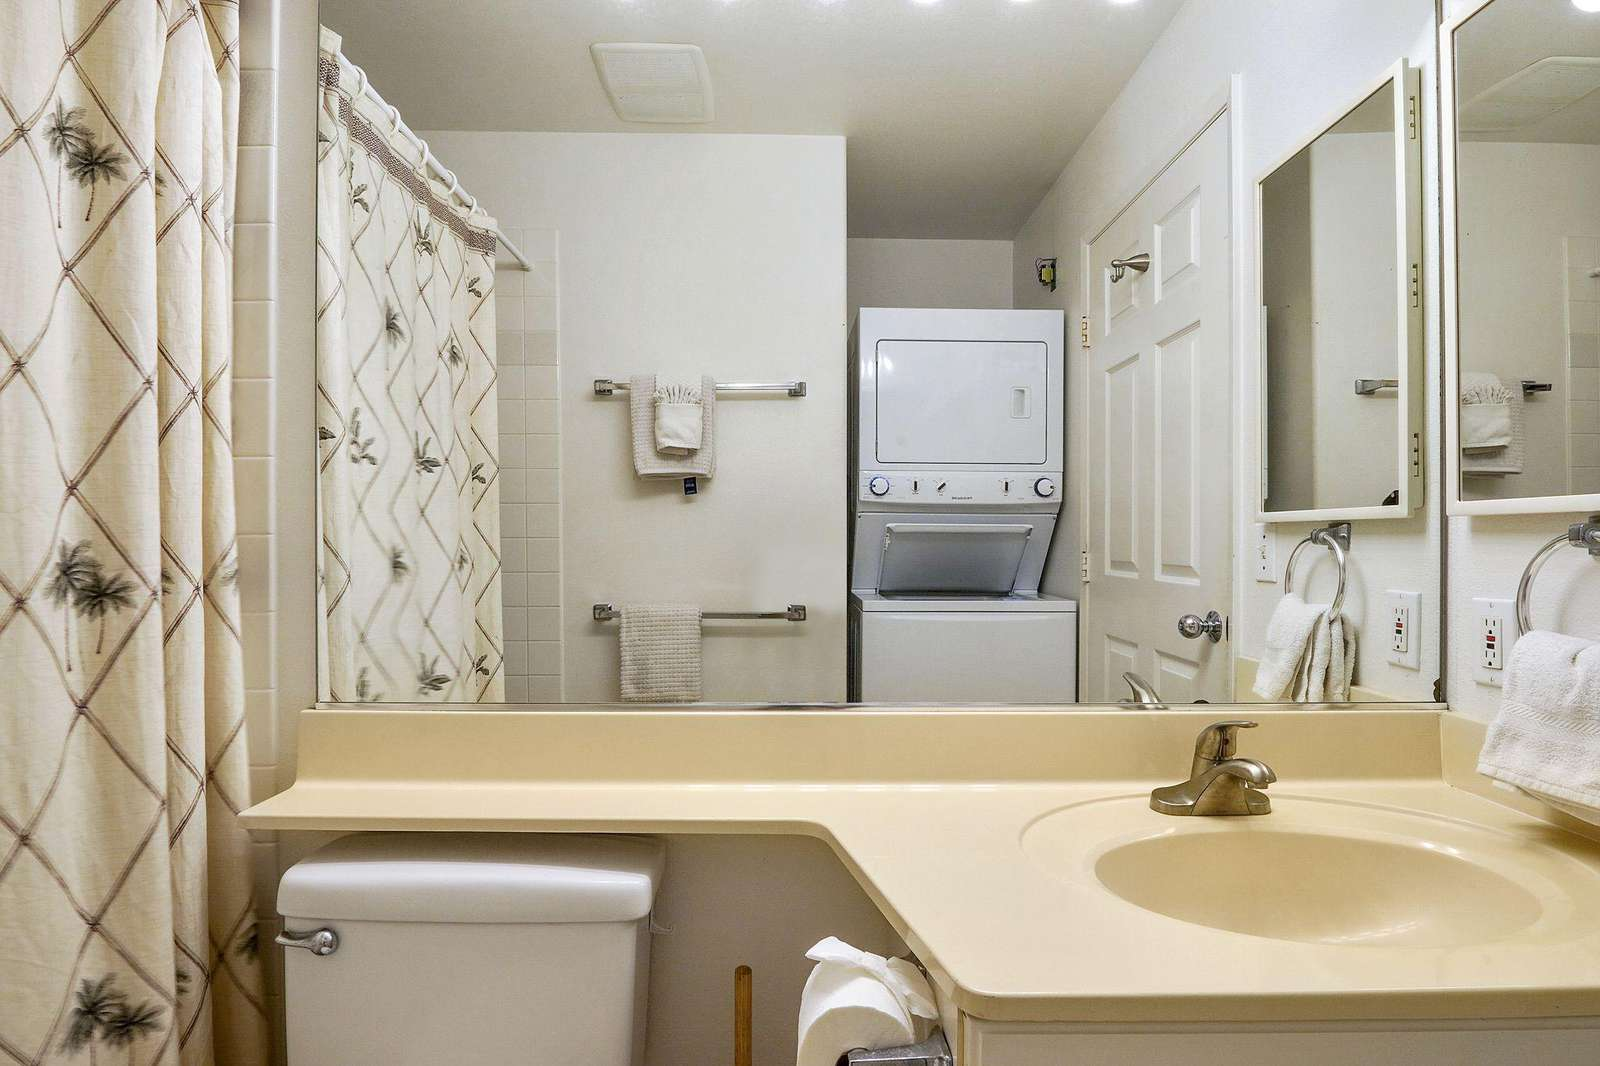 Washer/Dryer located in the guest bath.